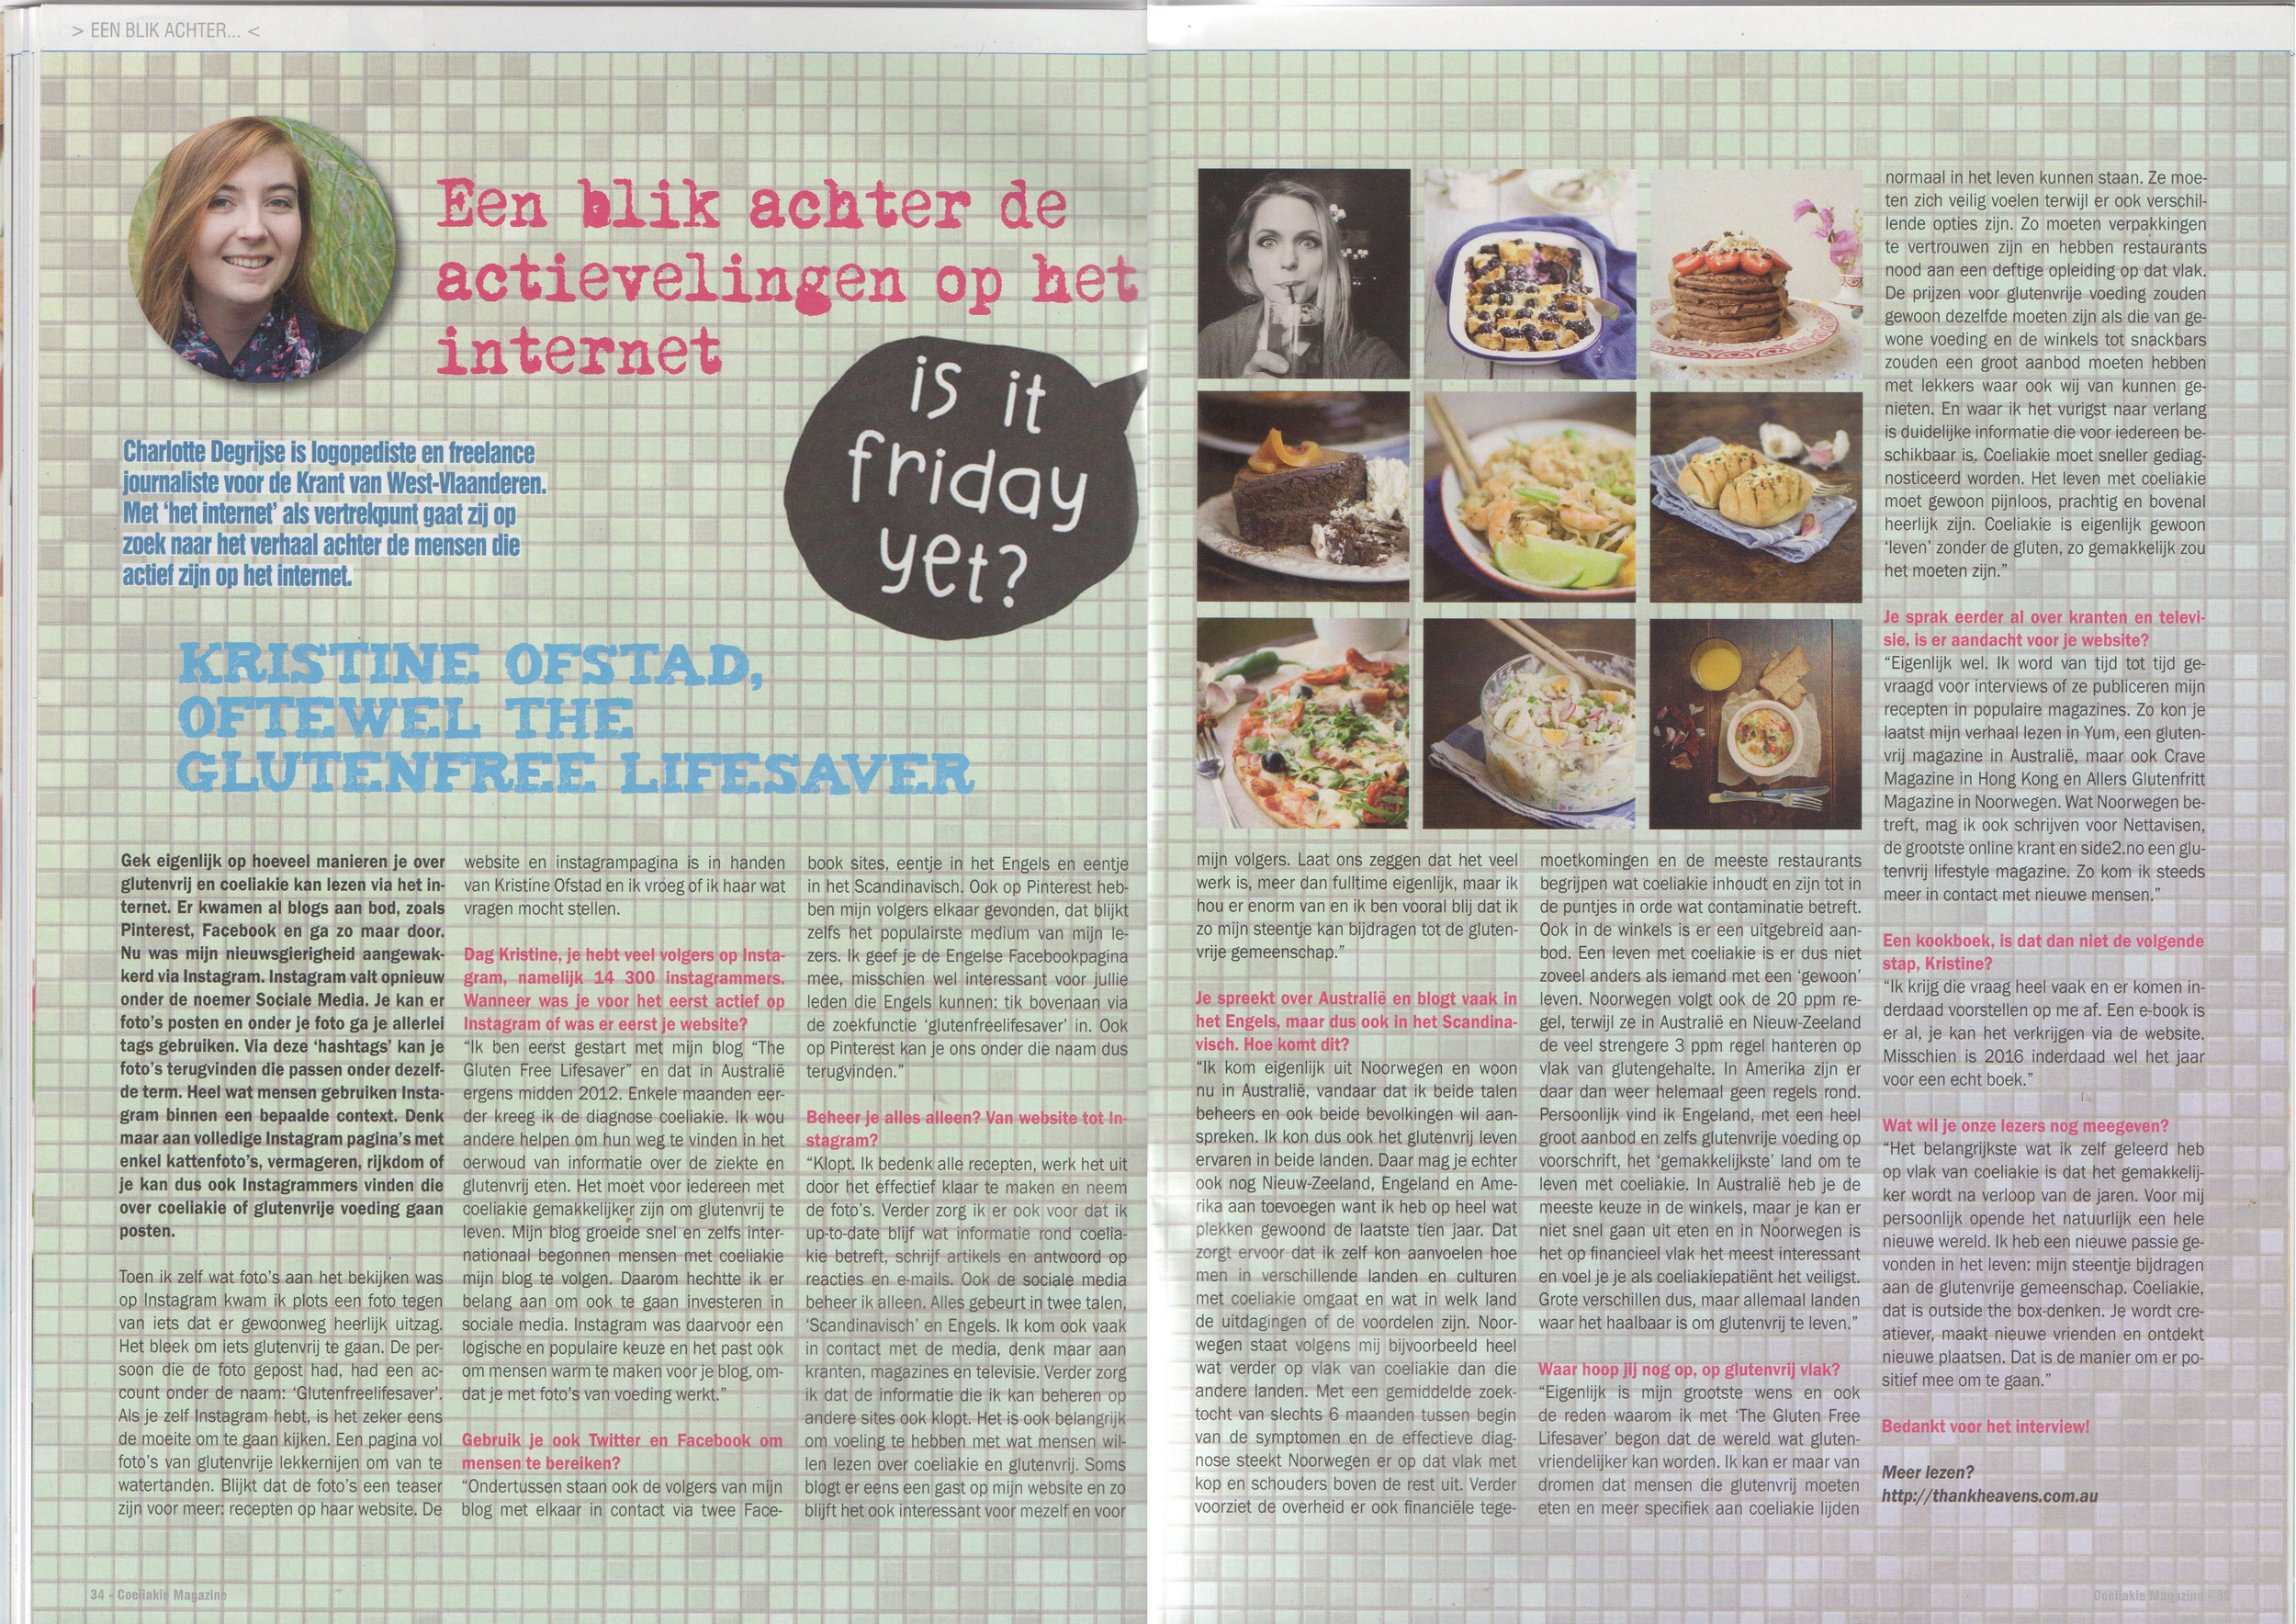 Intervju, Flemish Coeliac Assosciation